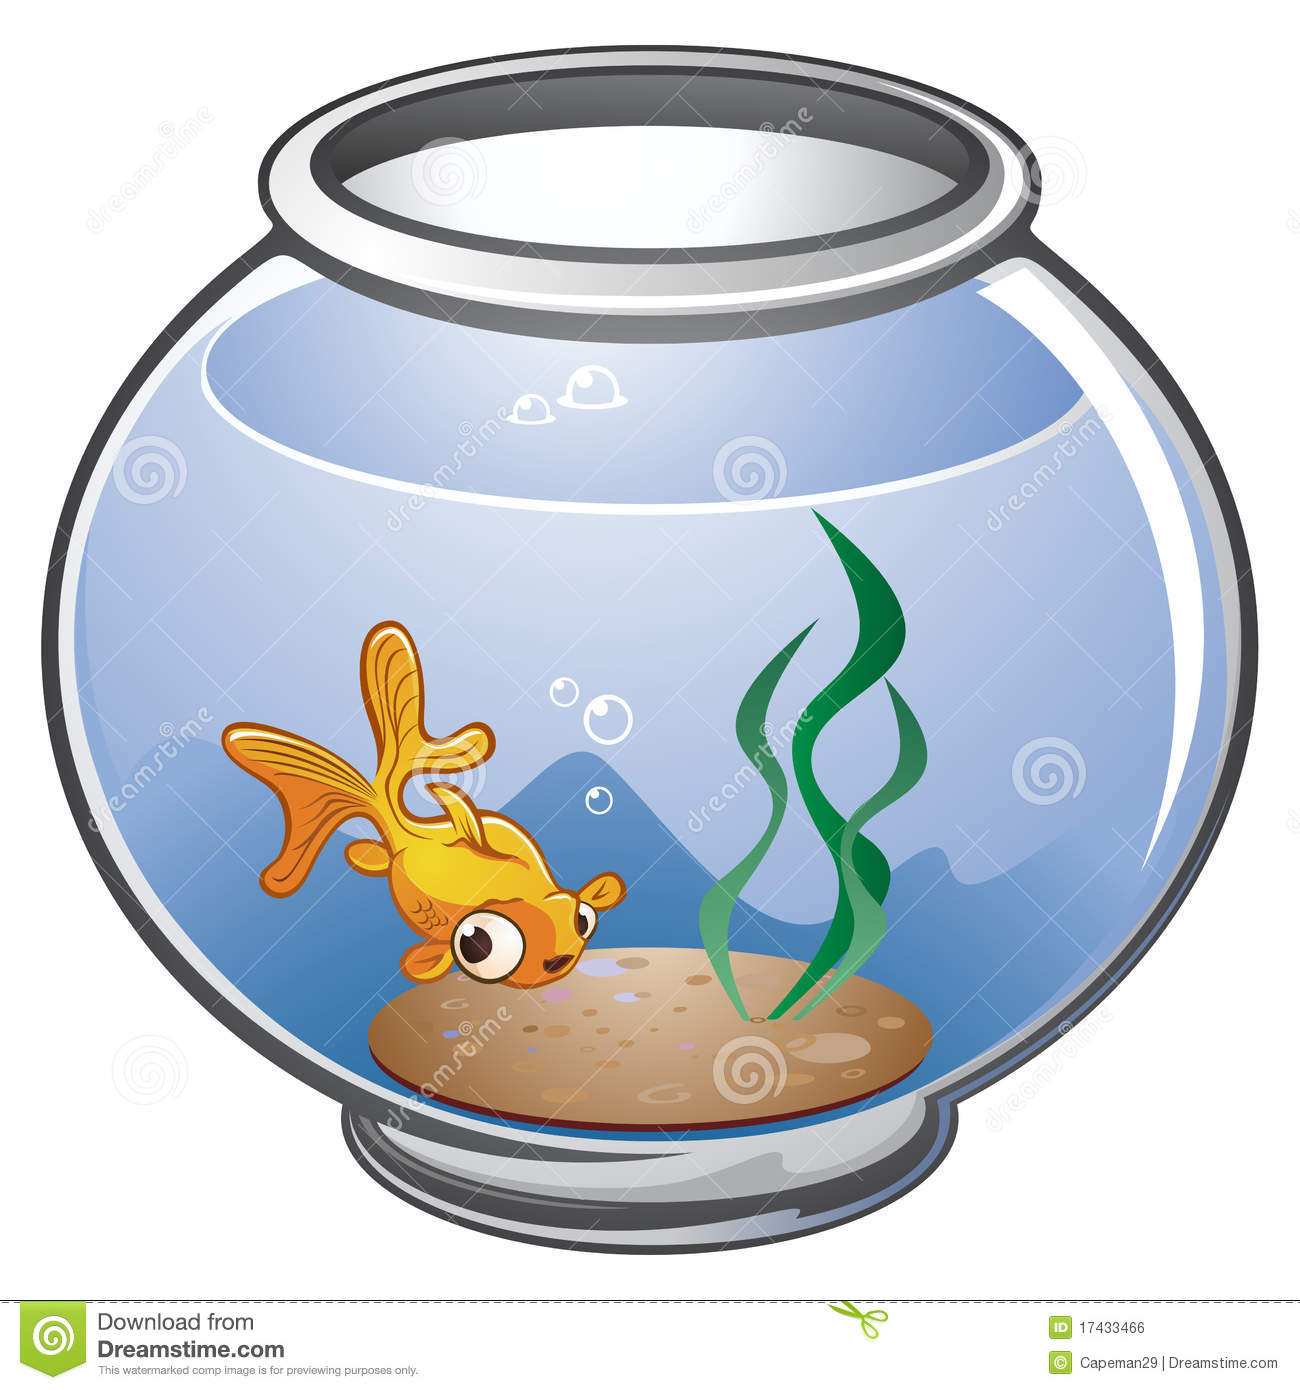 Fish bowl royalty free stock image image 17433466 for Fish bowl pictures